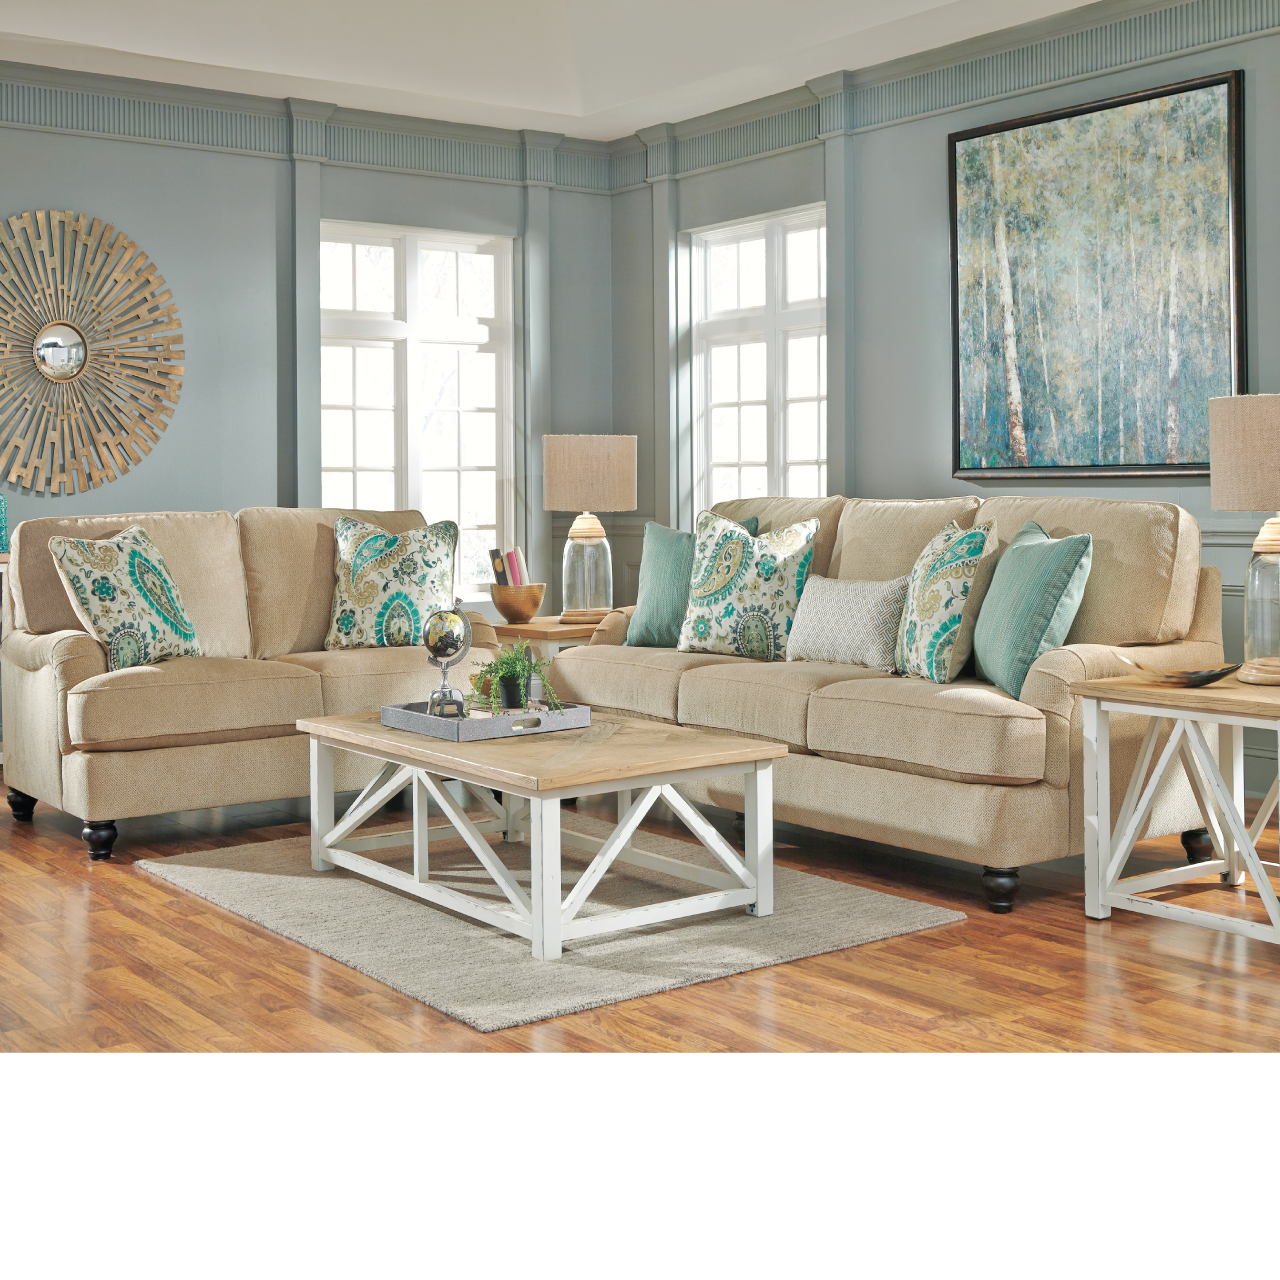 Coastal living room ideas lochian sofa by ashley for Living room furniture ideas